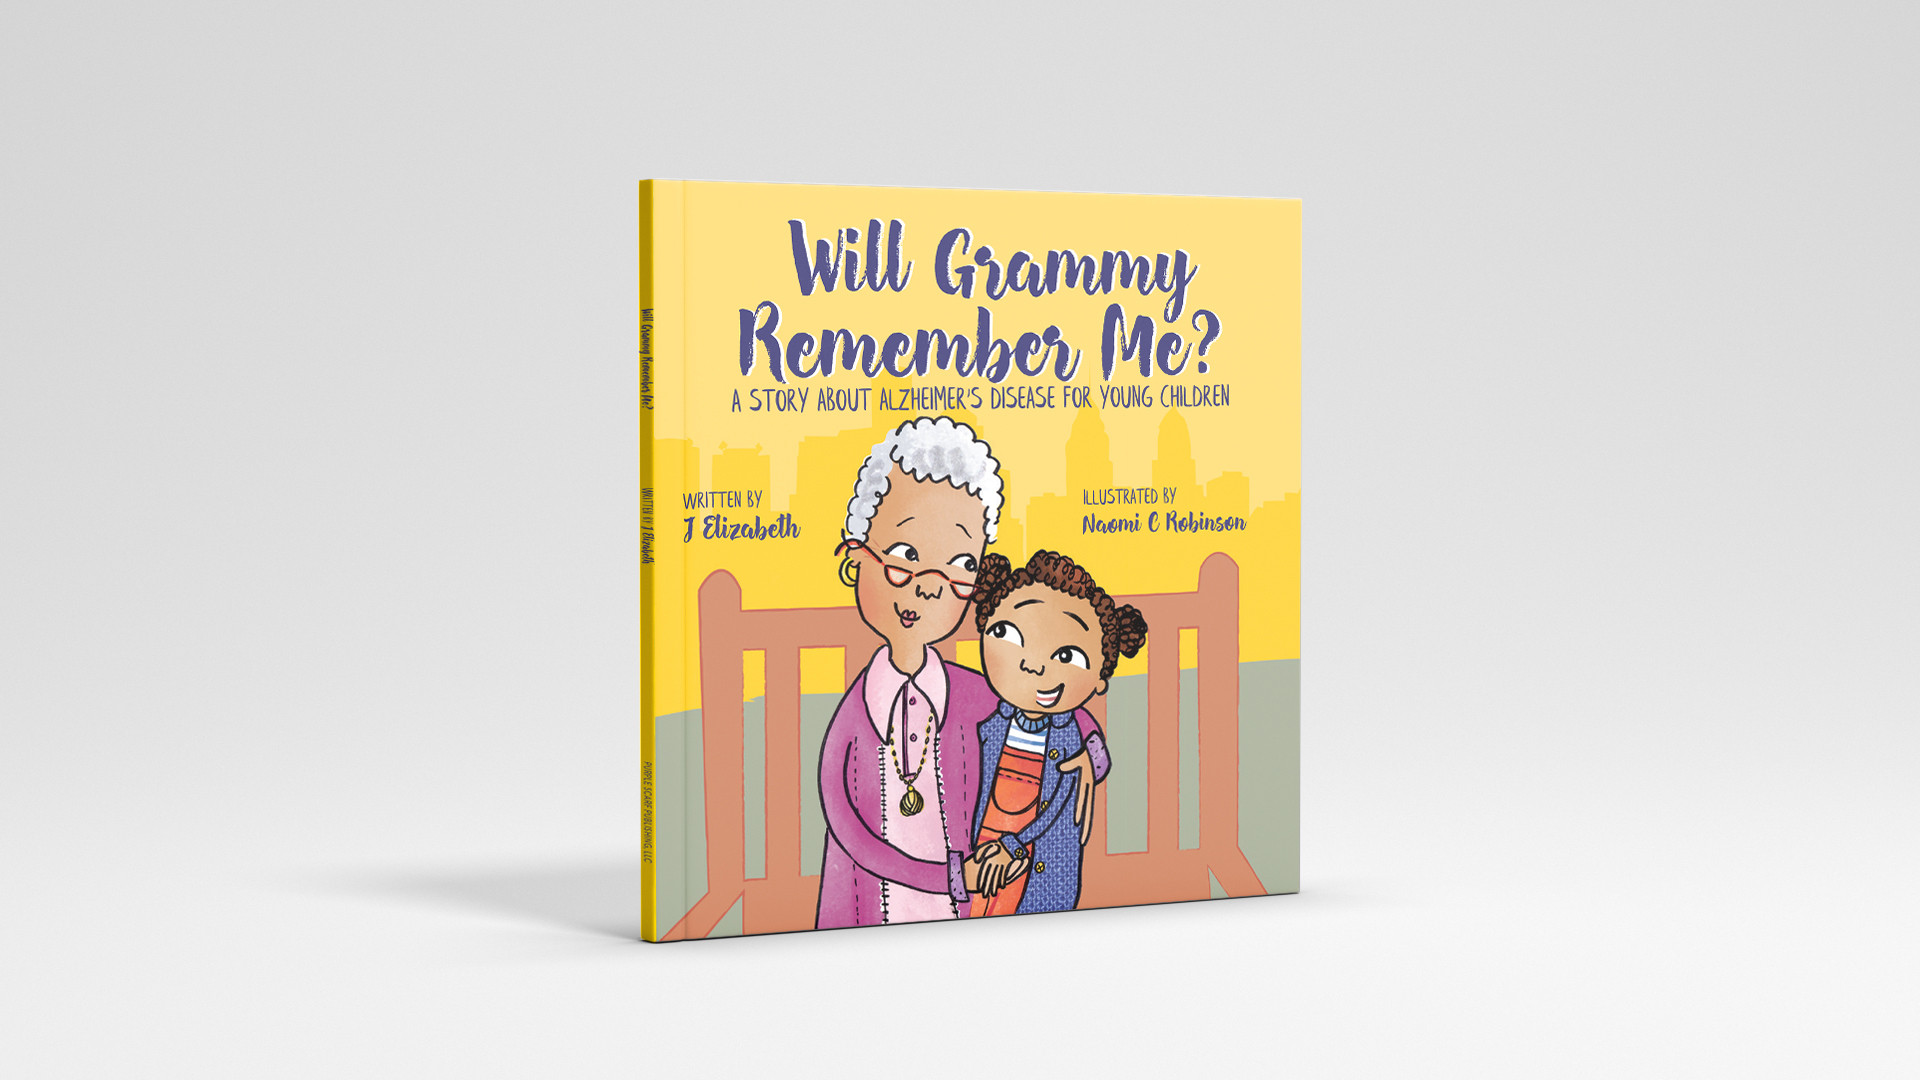 Will Grammy Remember Me Written by J Elizabeth  Illustrated by Naomi C Robinson  Publisher: Purple Scarf Publsihing